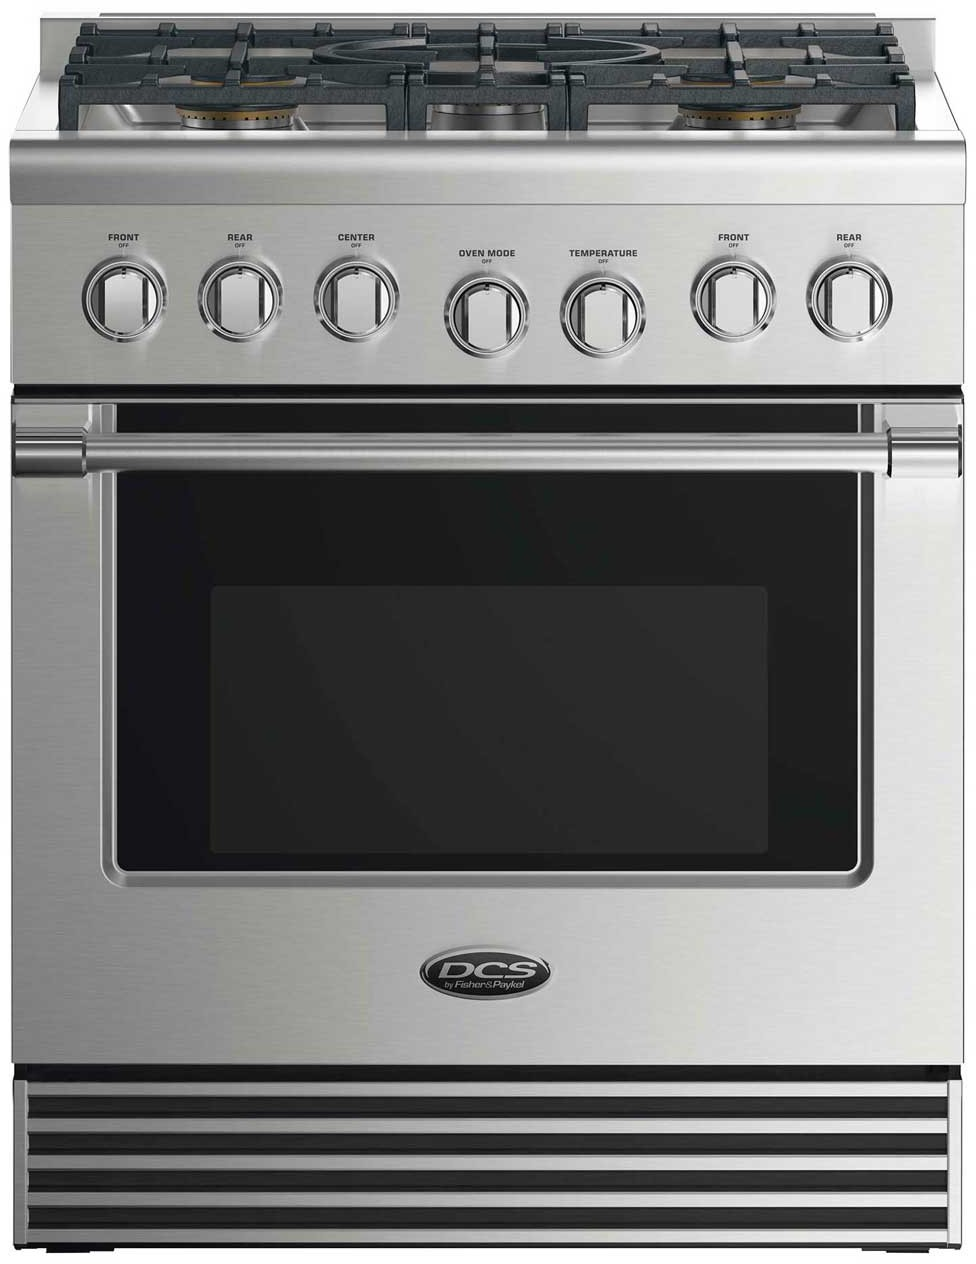 Professional Ovens For Home Dcs Ranges Stoves Cooktops Grills Aj Madison